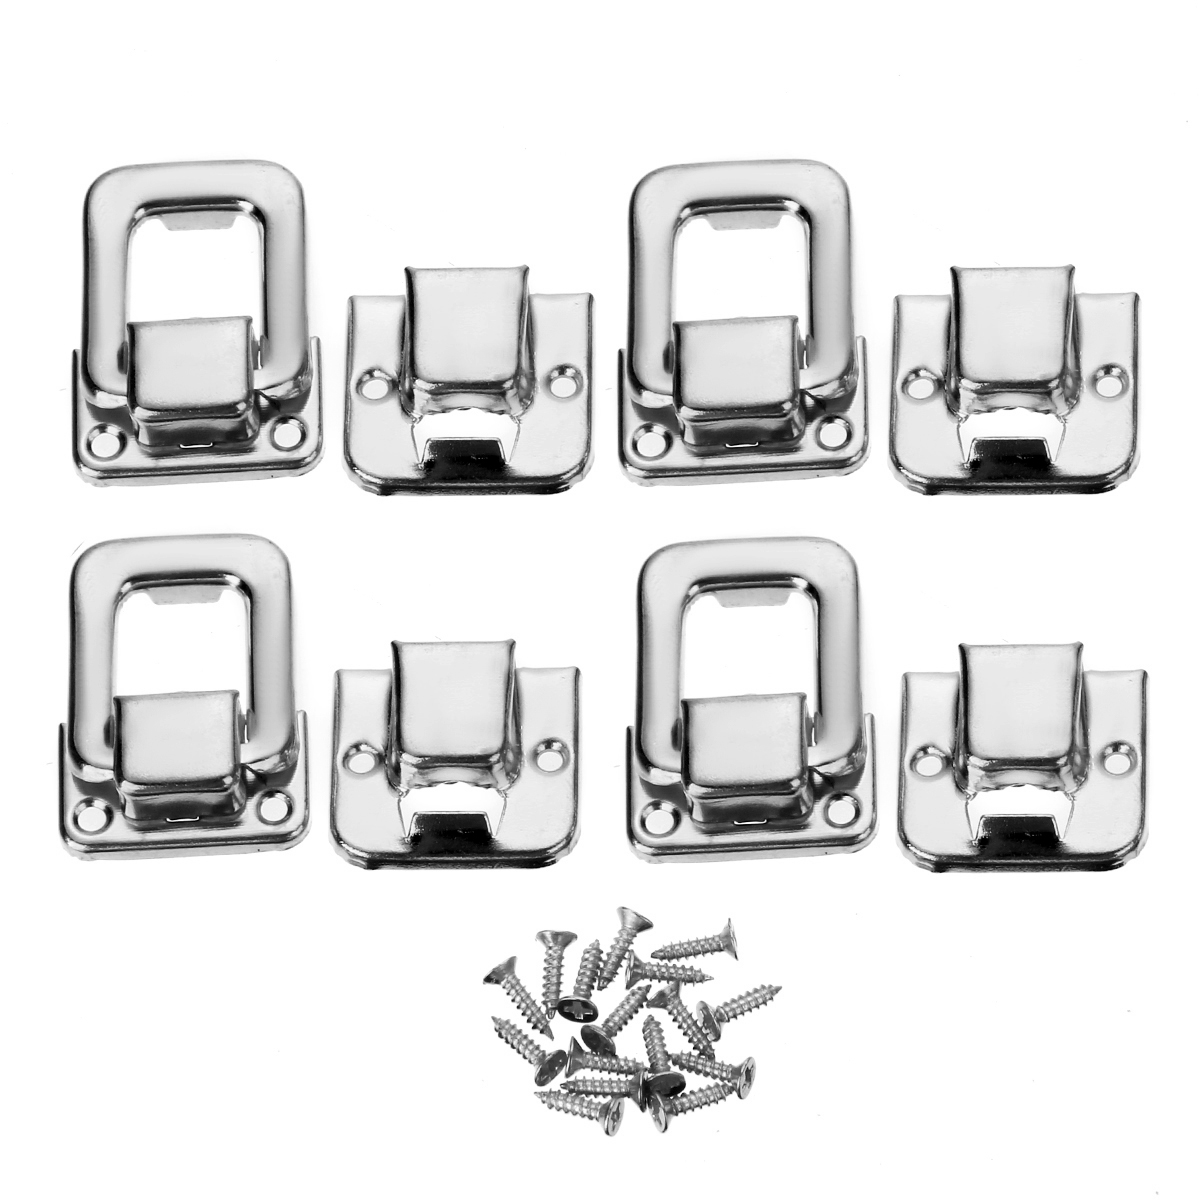 4pcs Silver Fastener Toggle Lock Latch Catch Practical Locks For Suitcase Case Boxes Chests Trunk Tools